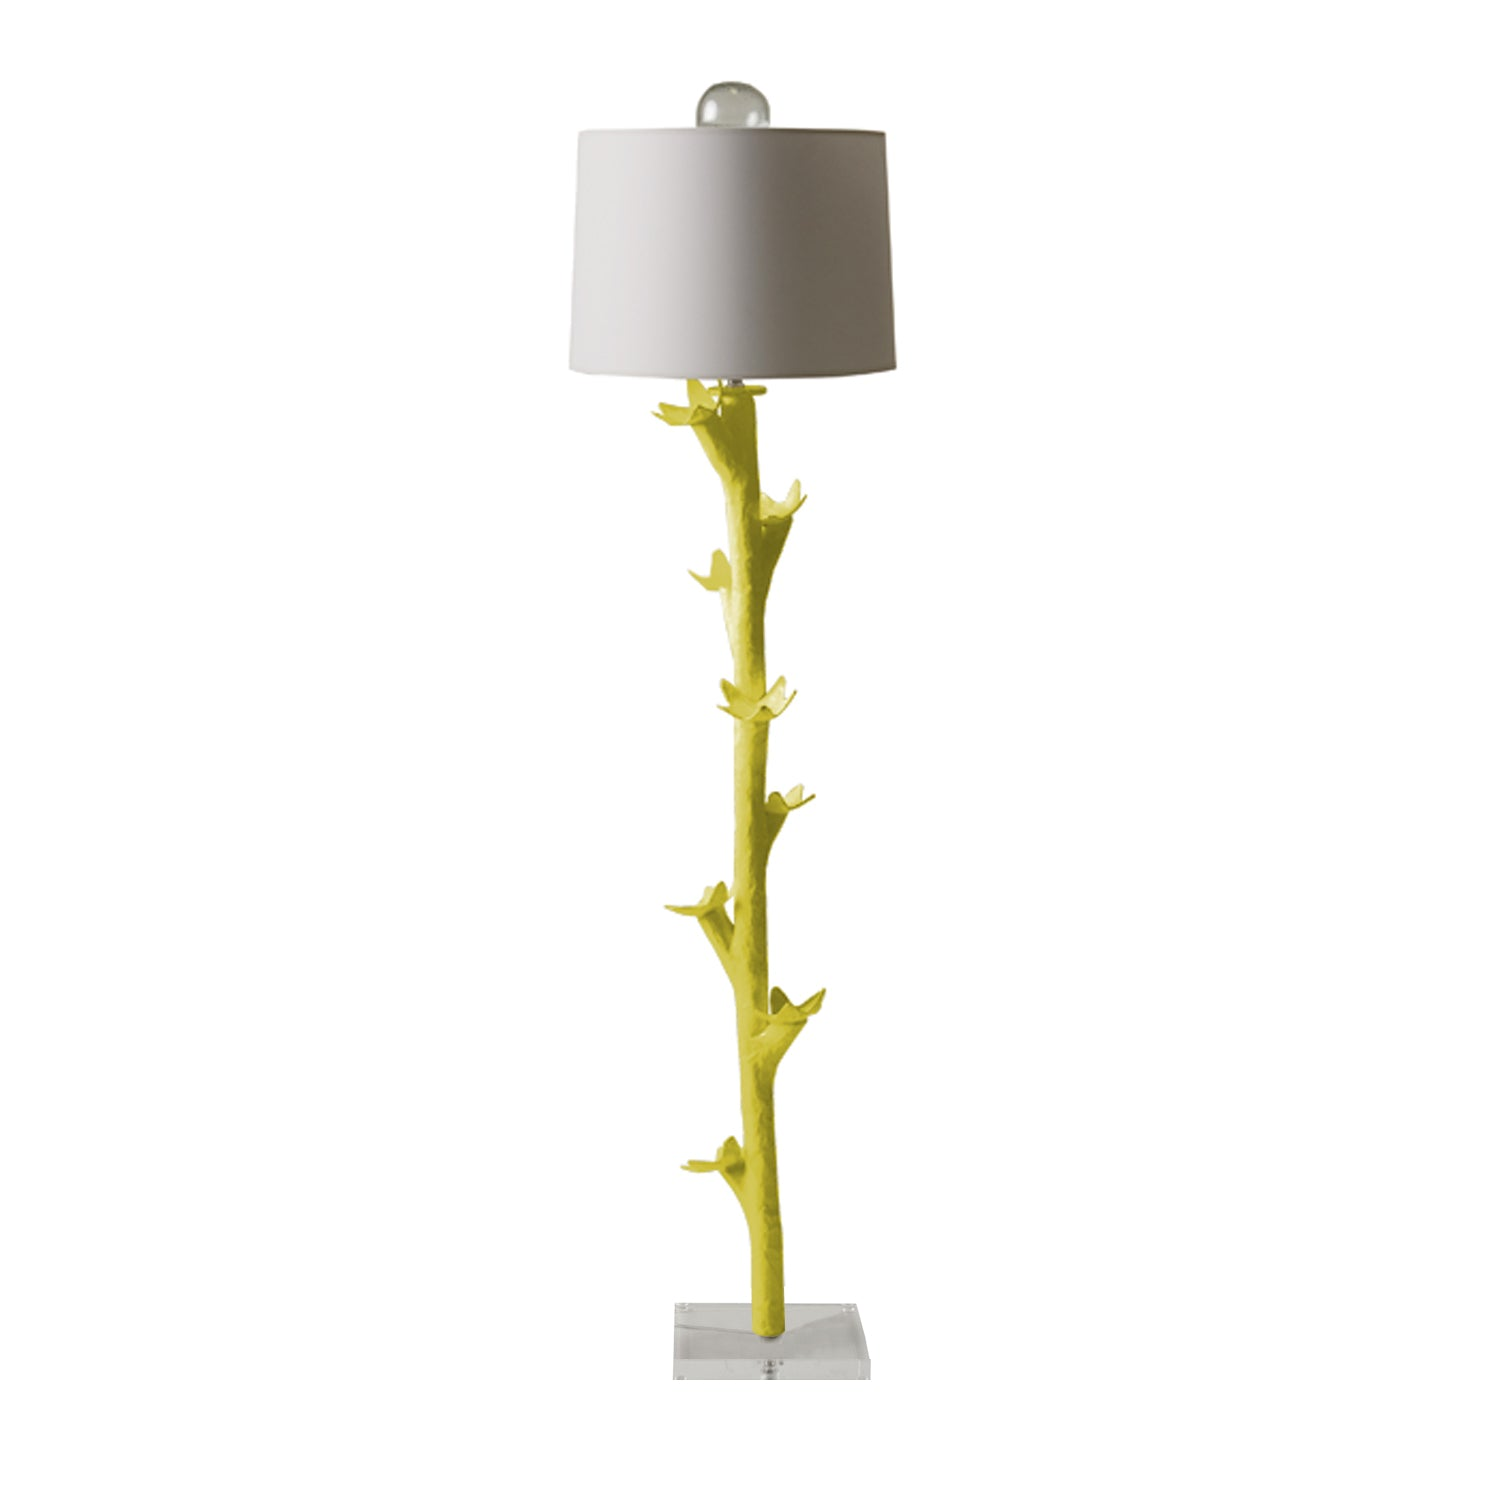 chartreuse papier mache funky floor light by stray dog designs